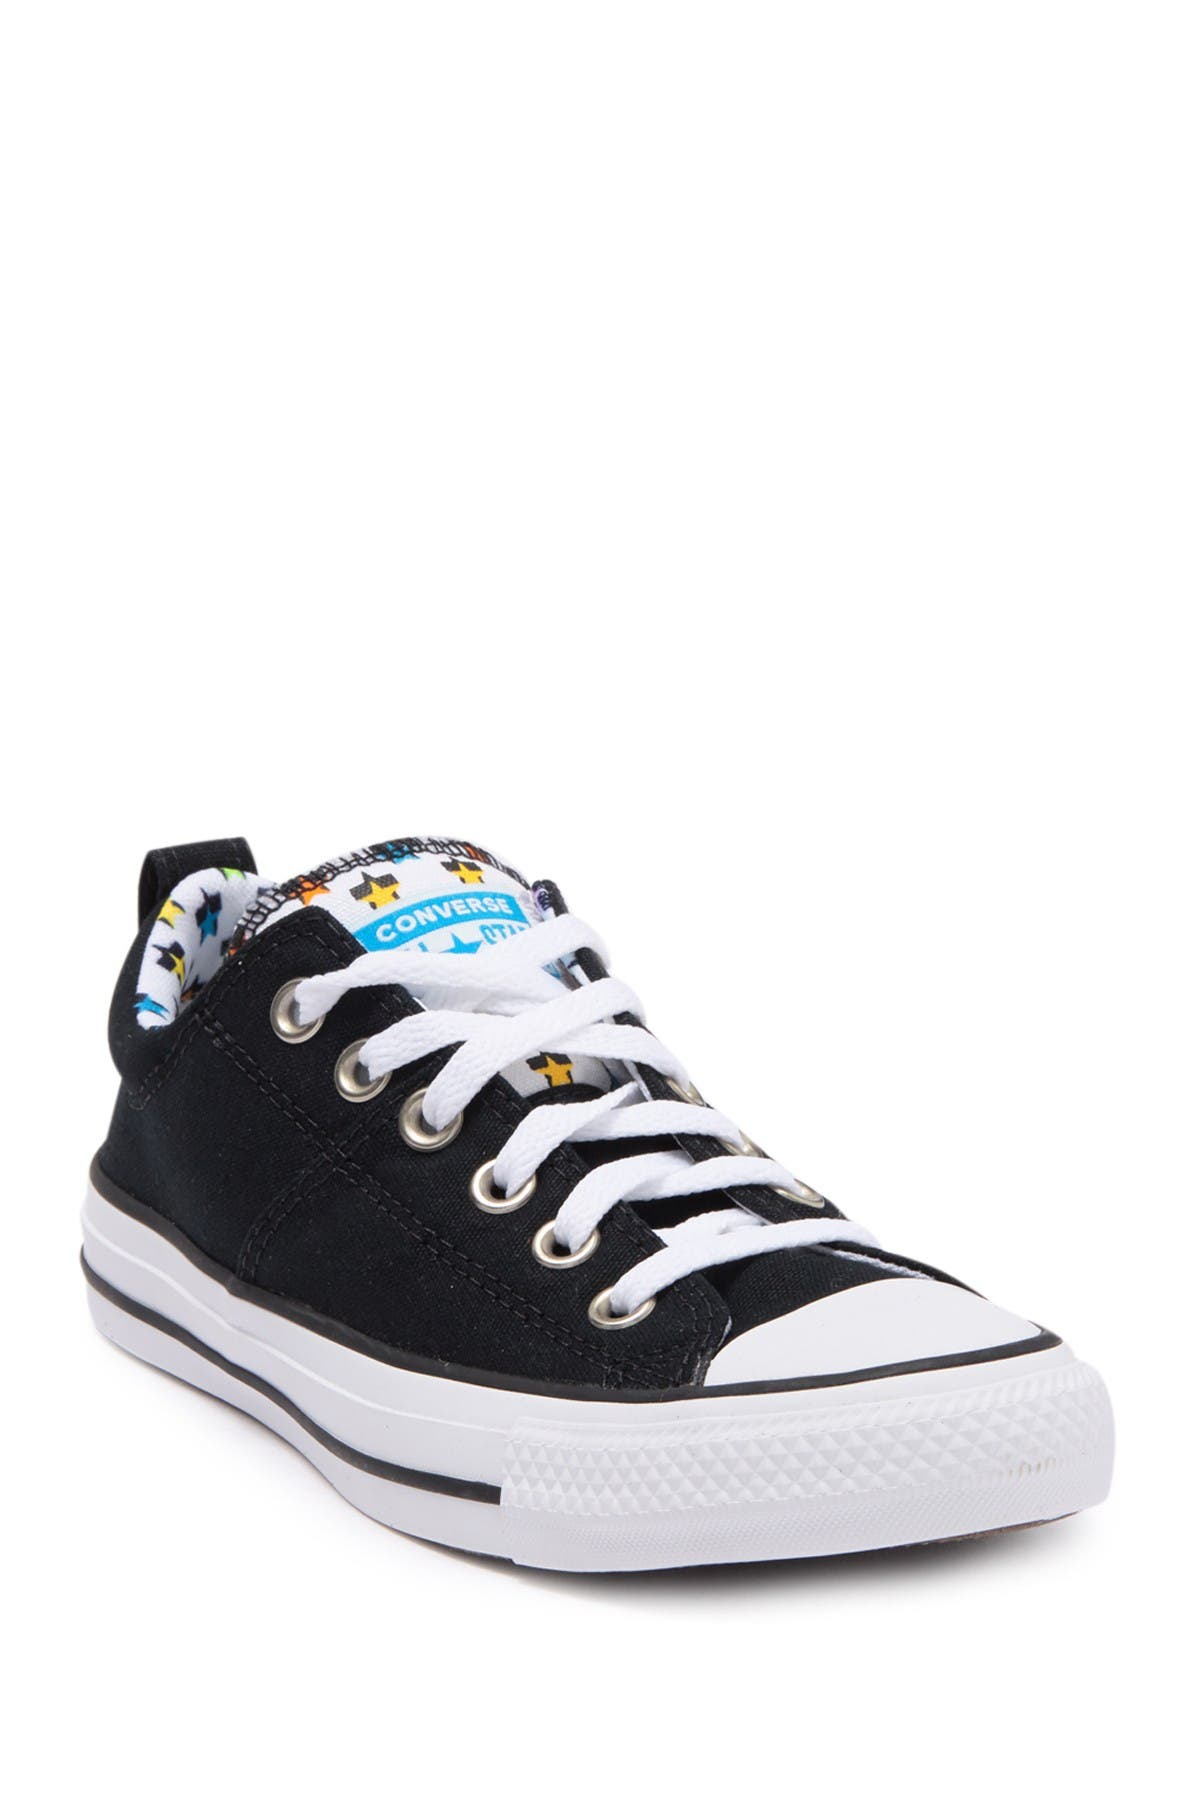 Image of Converse Madison Low-Top Sneaker